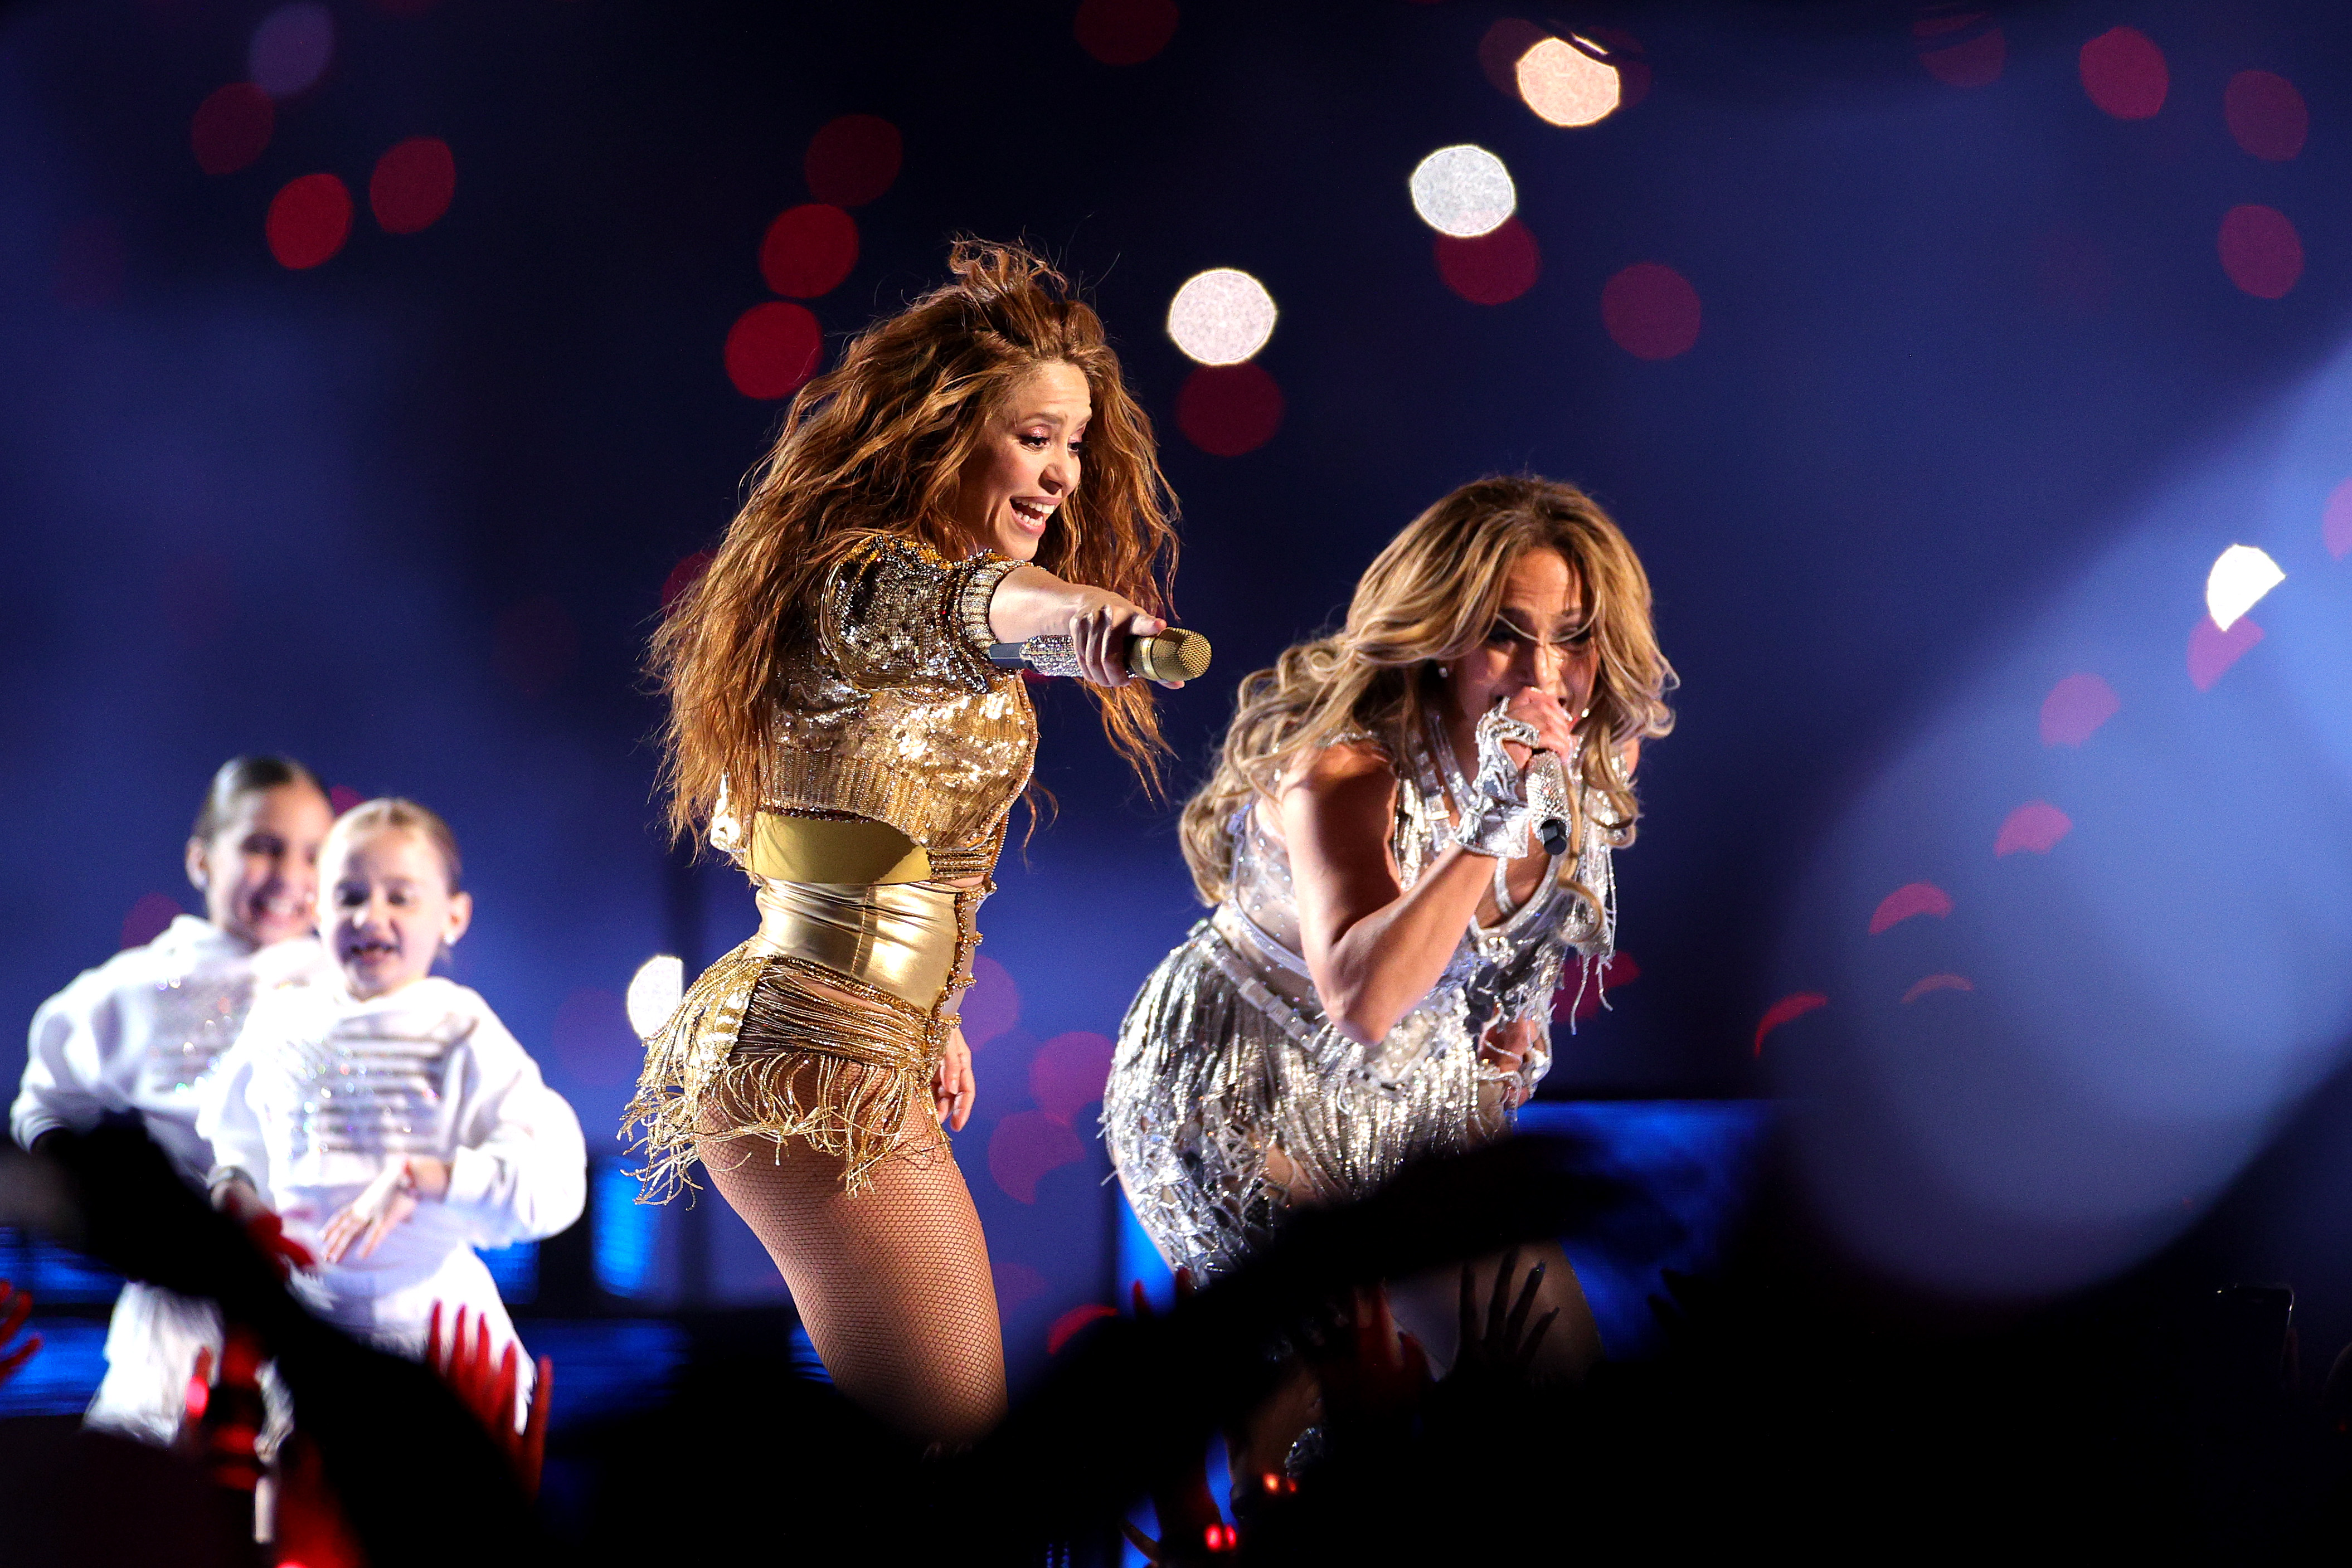 Over 1,300 People Couldn't Handle All the Sexy in JLo & Shakira's Halftime Show